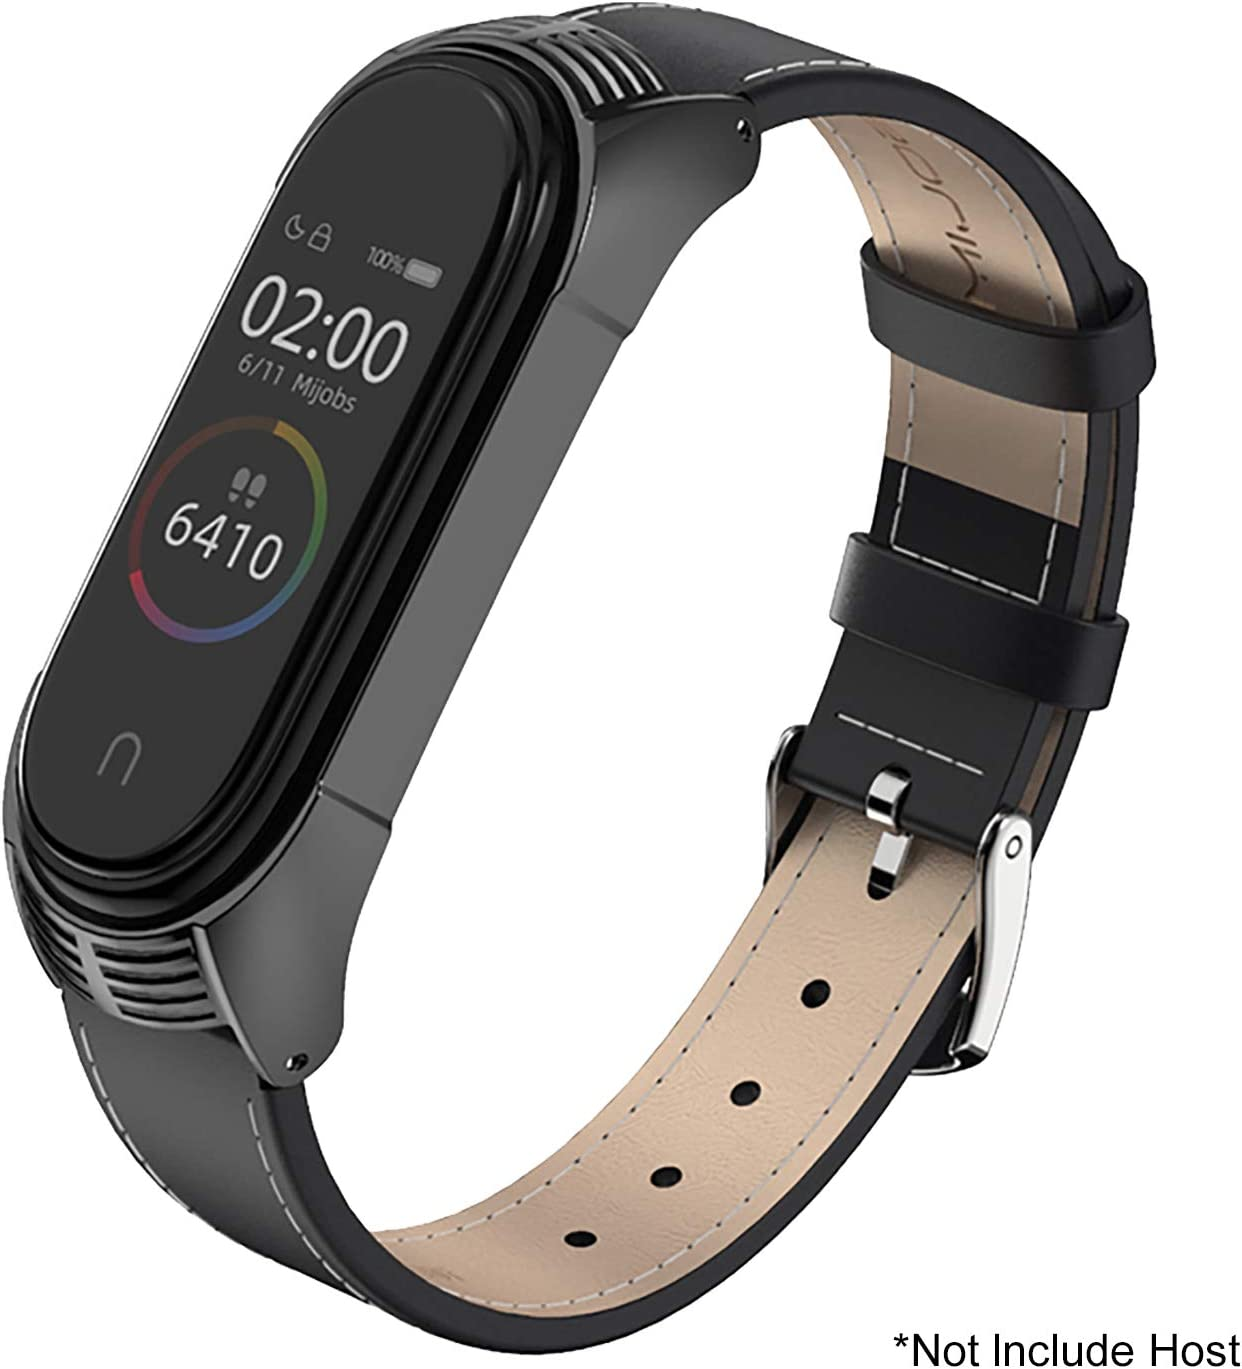 SenMore Compatible Correa Xiaomi Mi Band 4 3 Correas Cuero, Pulsera de Leather Agradable para Mi Band 4 Correa y Mi Band 3 Correa (No Host)